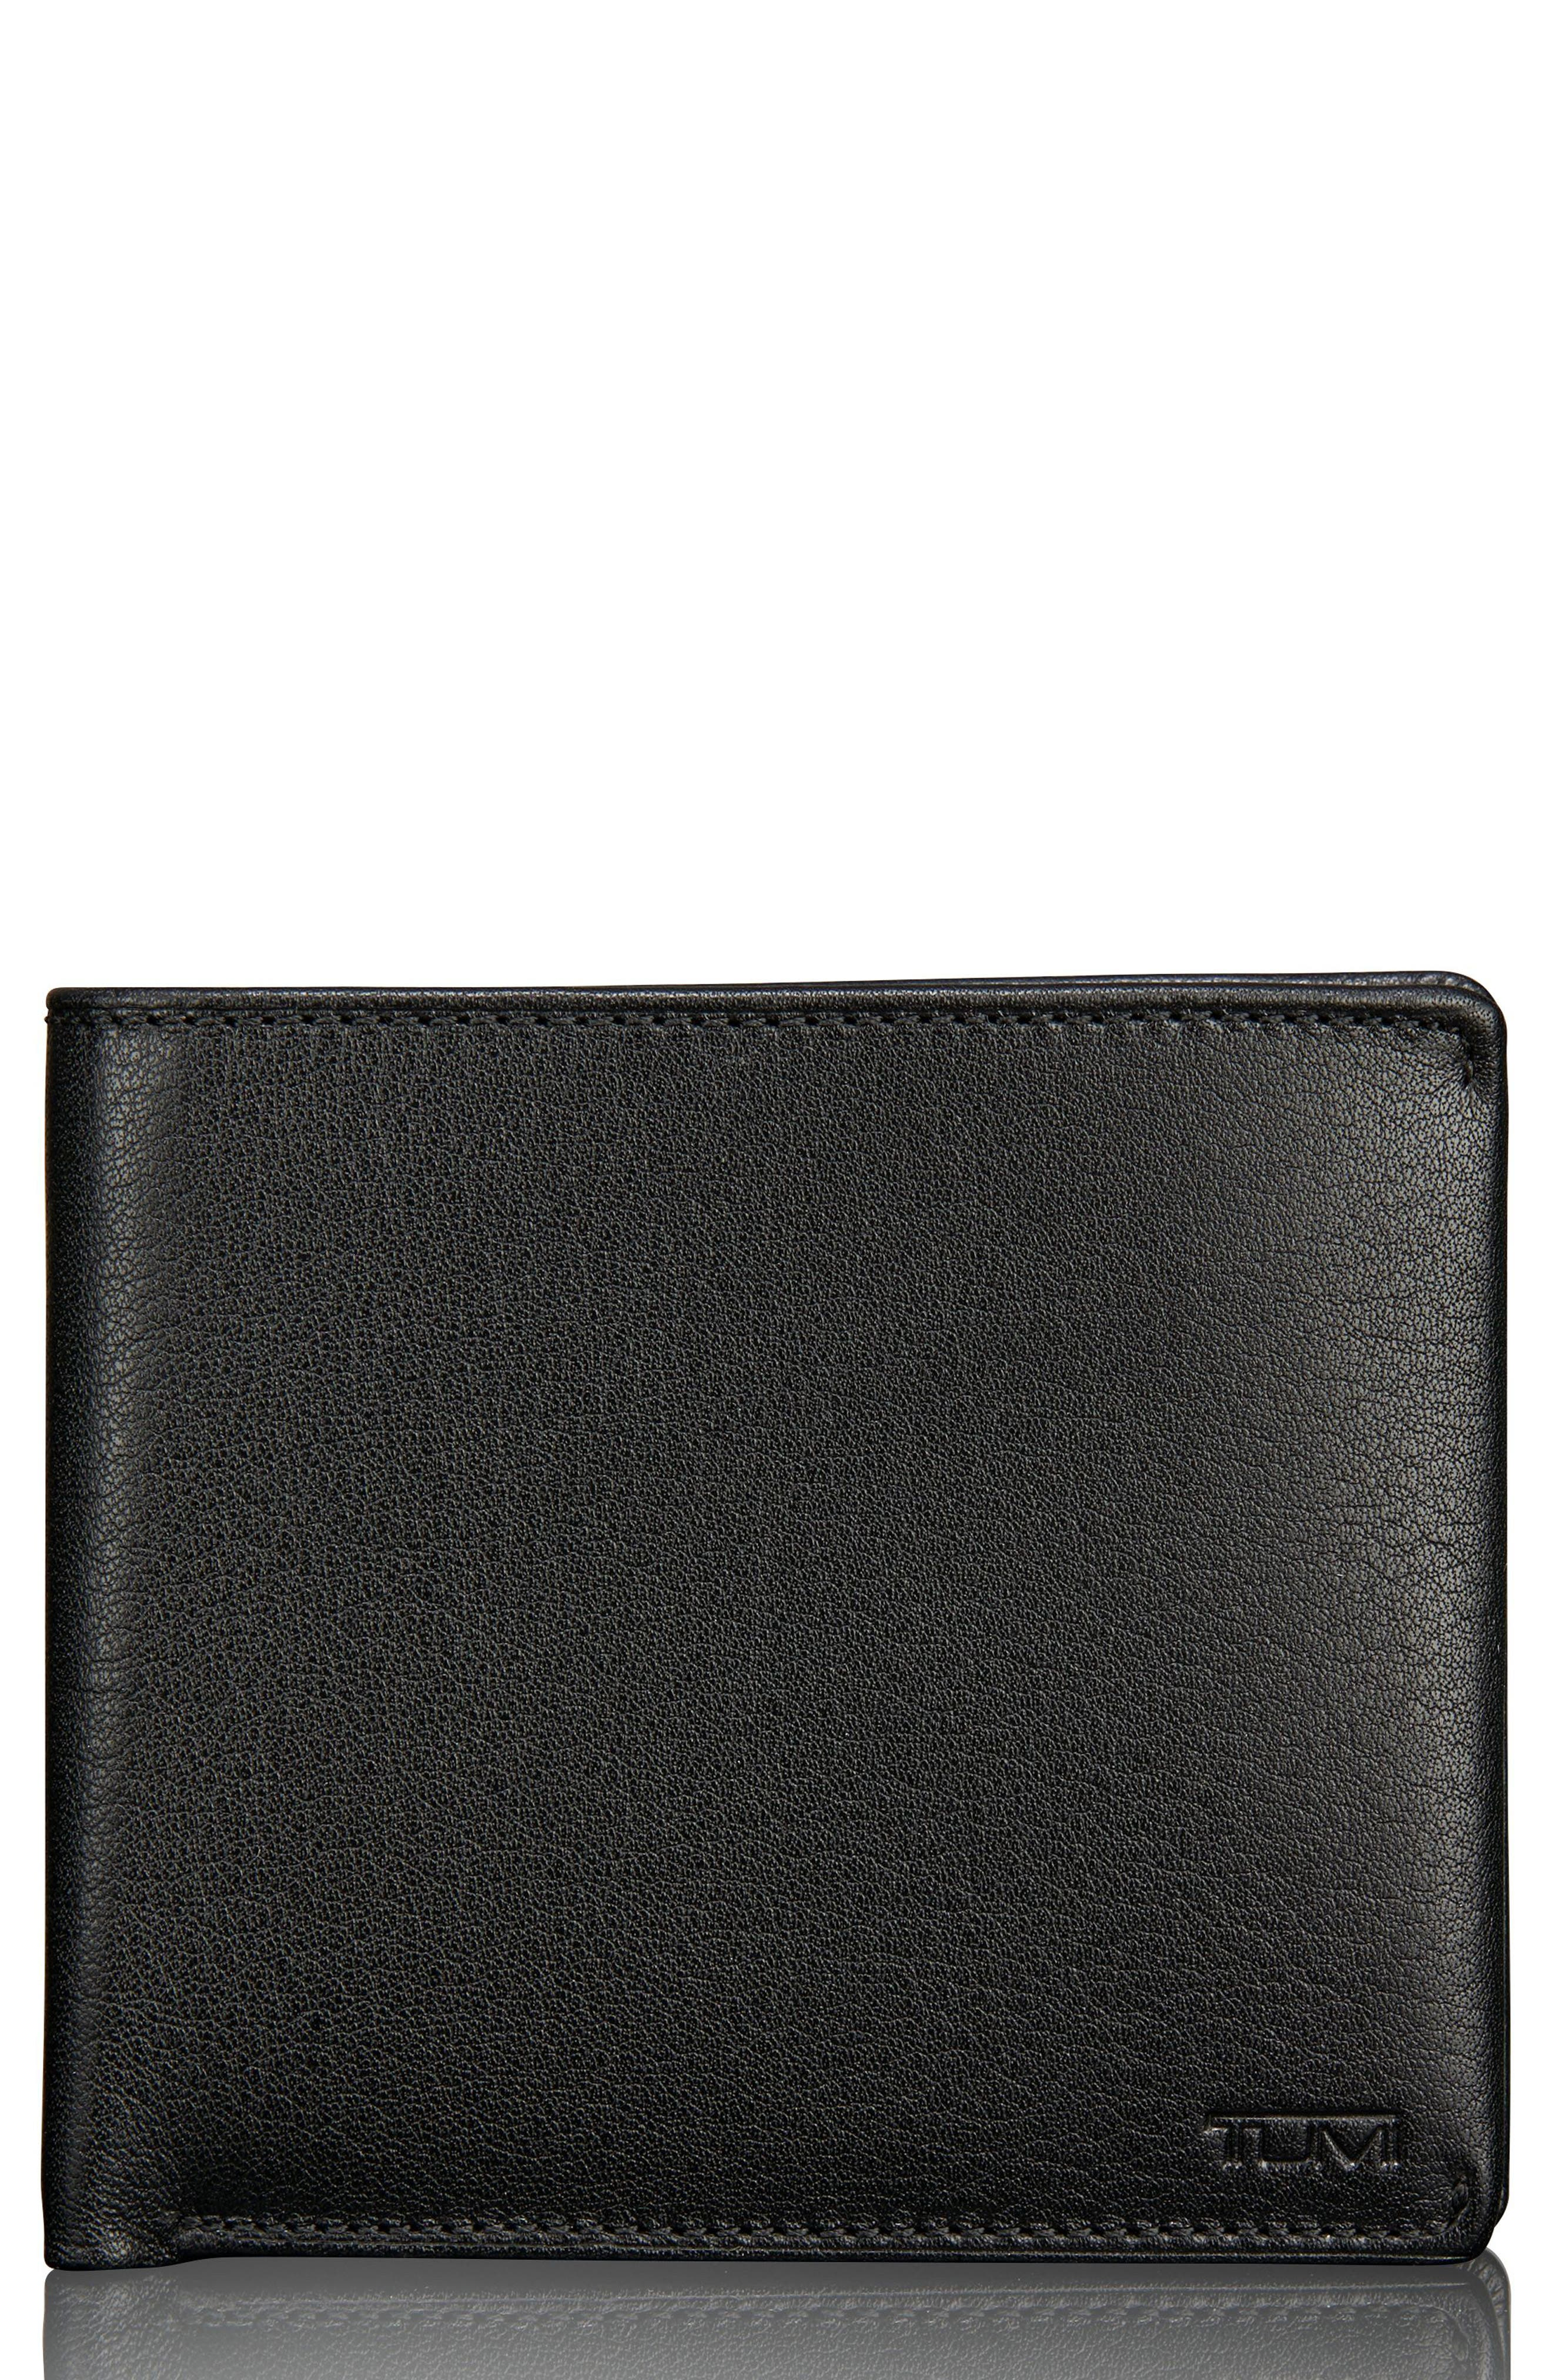 Alternate Image 1 Selected - Tumi Global Leather Passcase Wallet